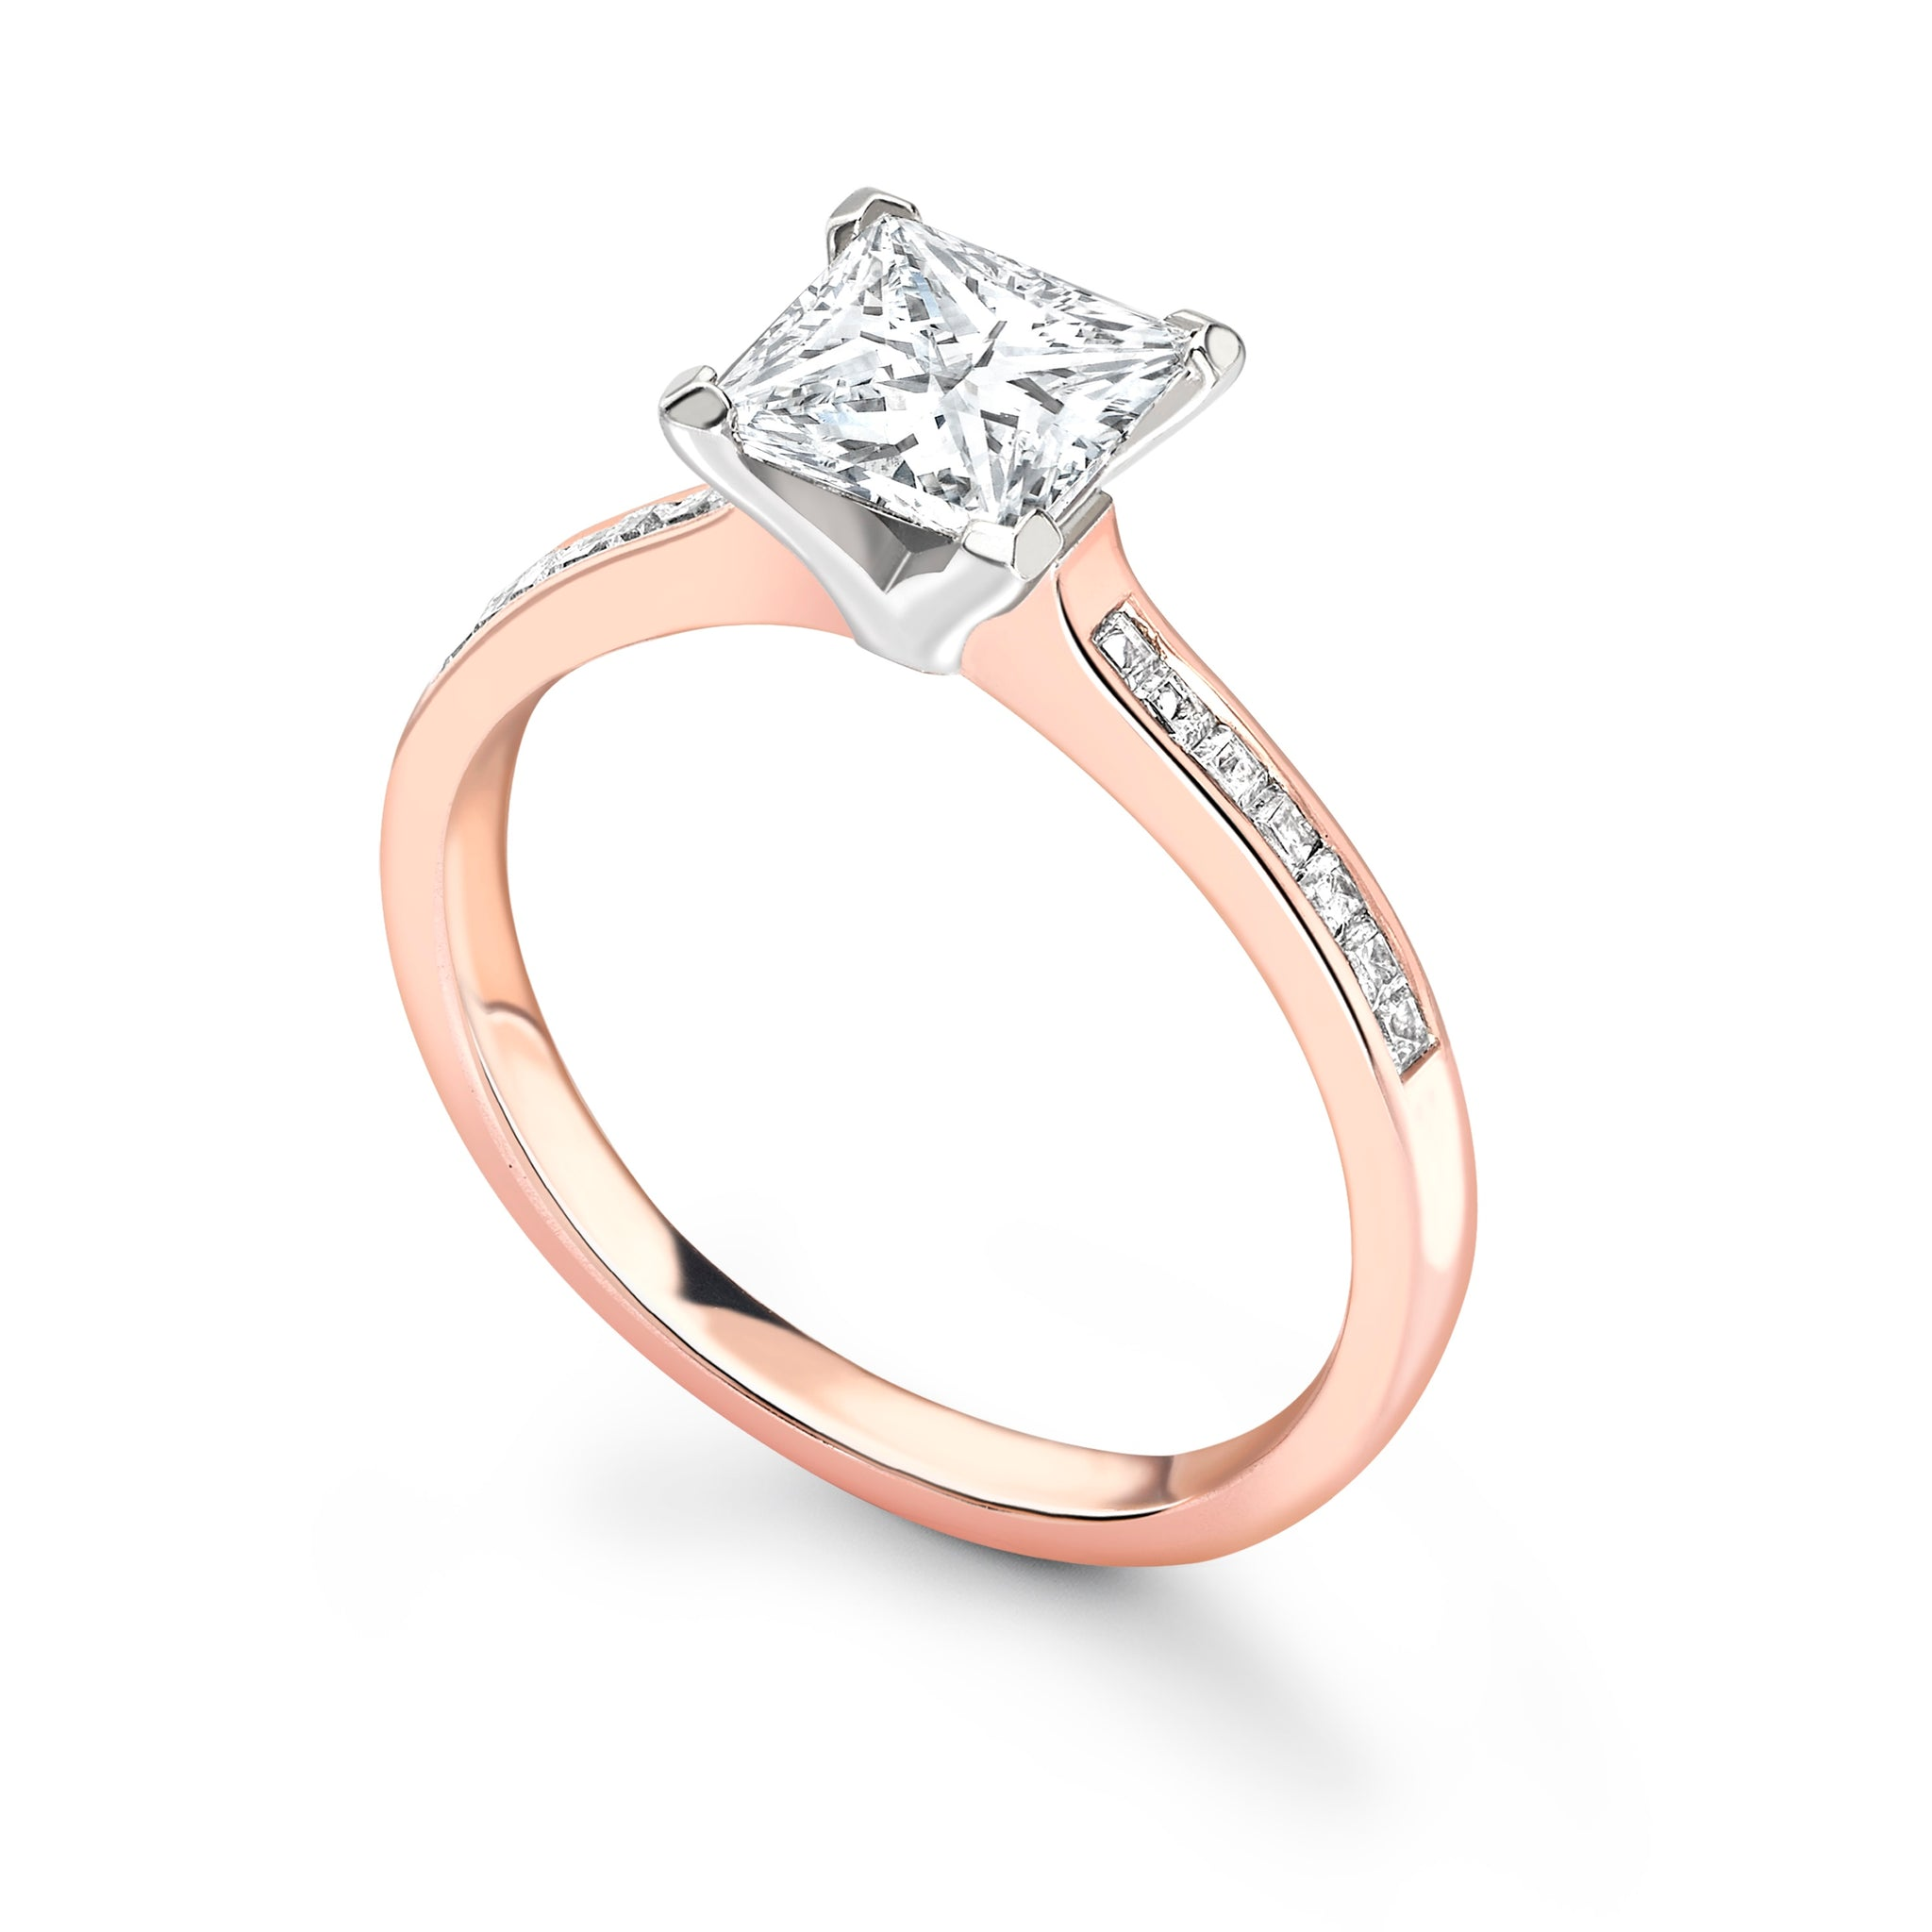 Hana Engagement Ring